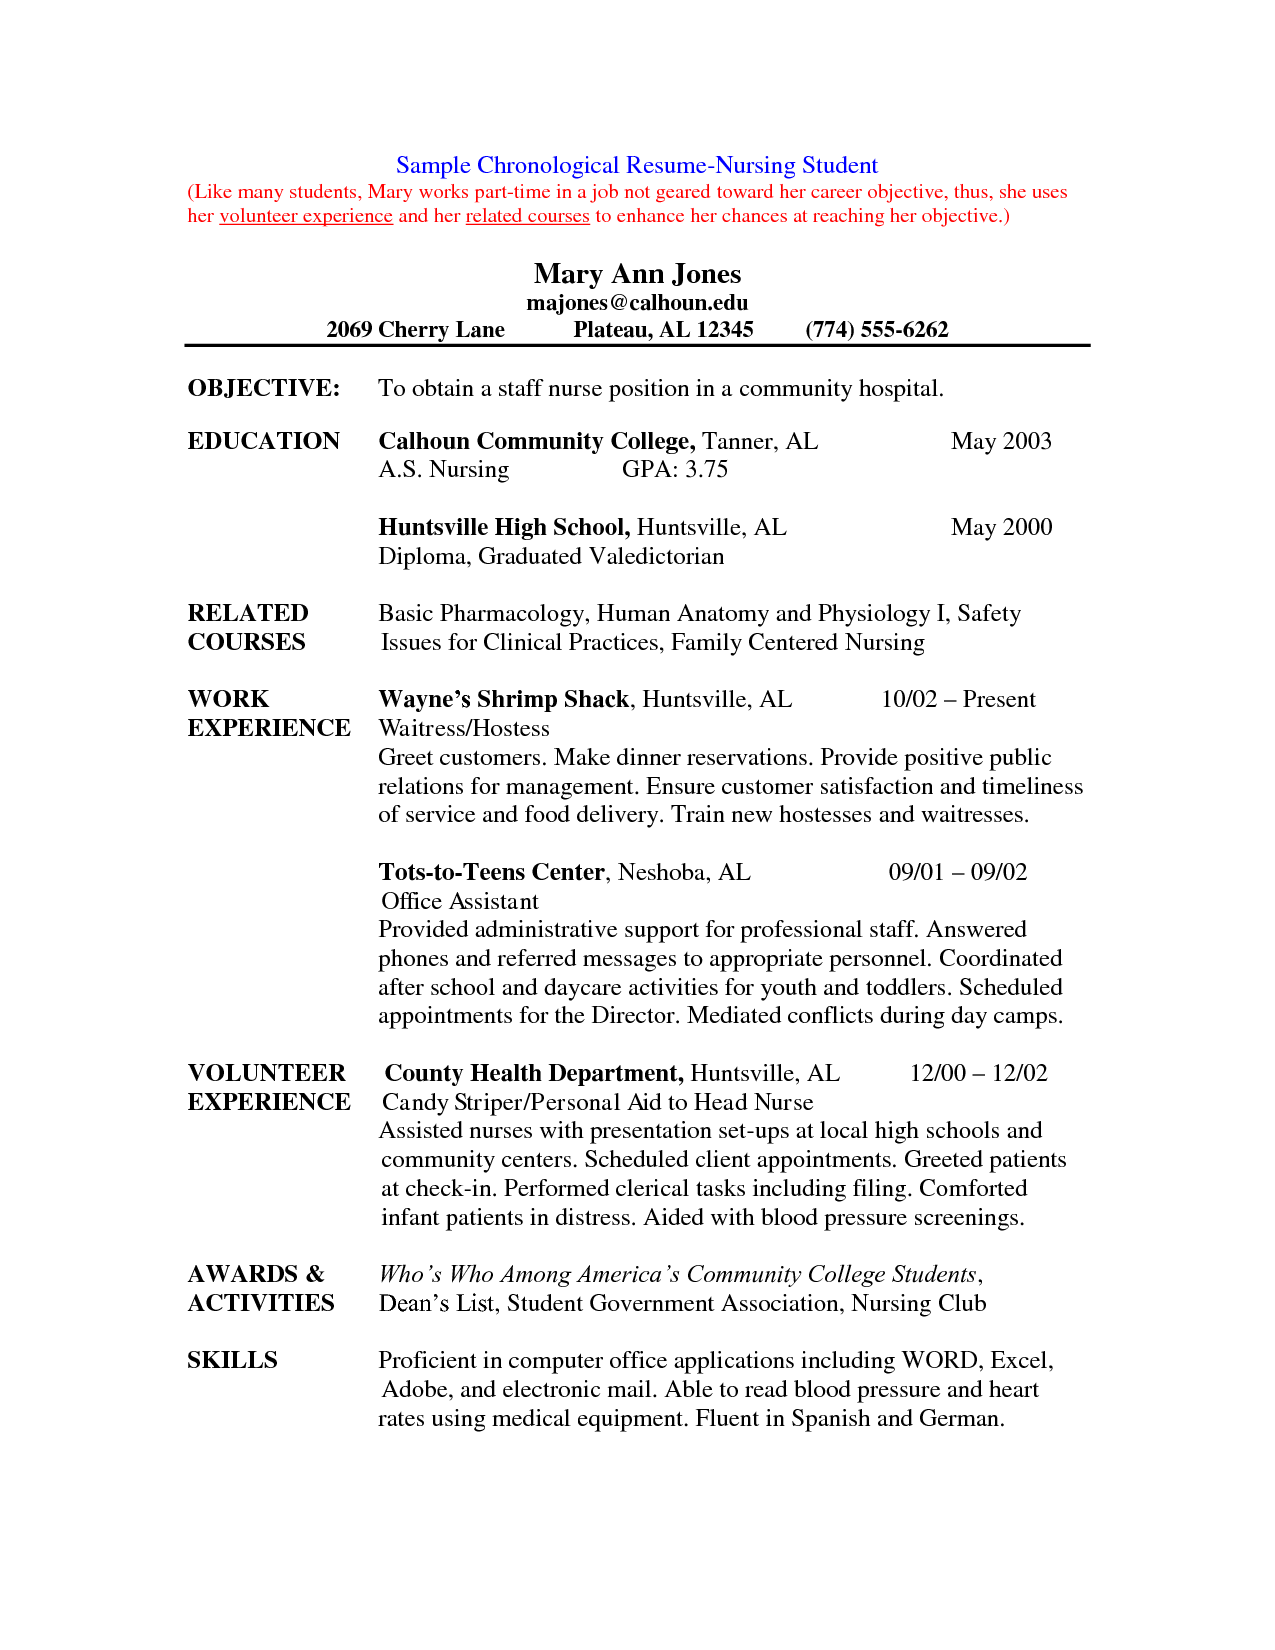 Oncology Nurse Resume Sample New Rn Resume  Nursing Student Resume  Nursing